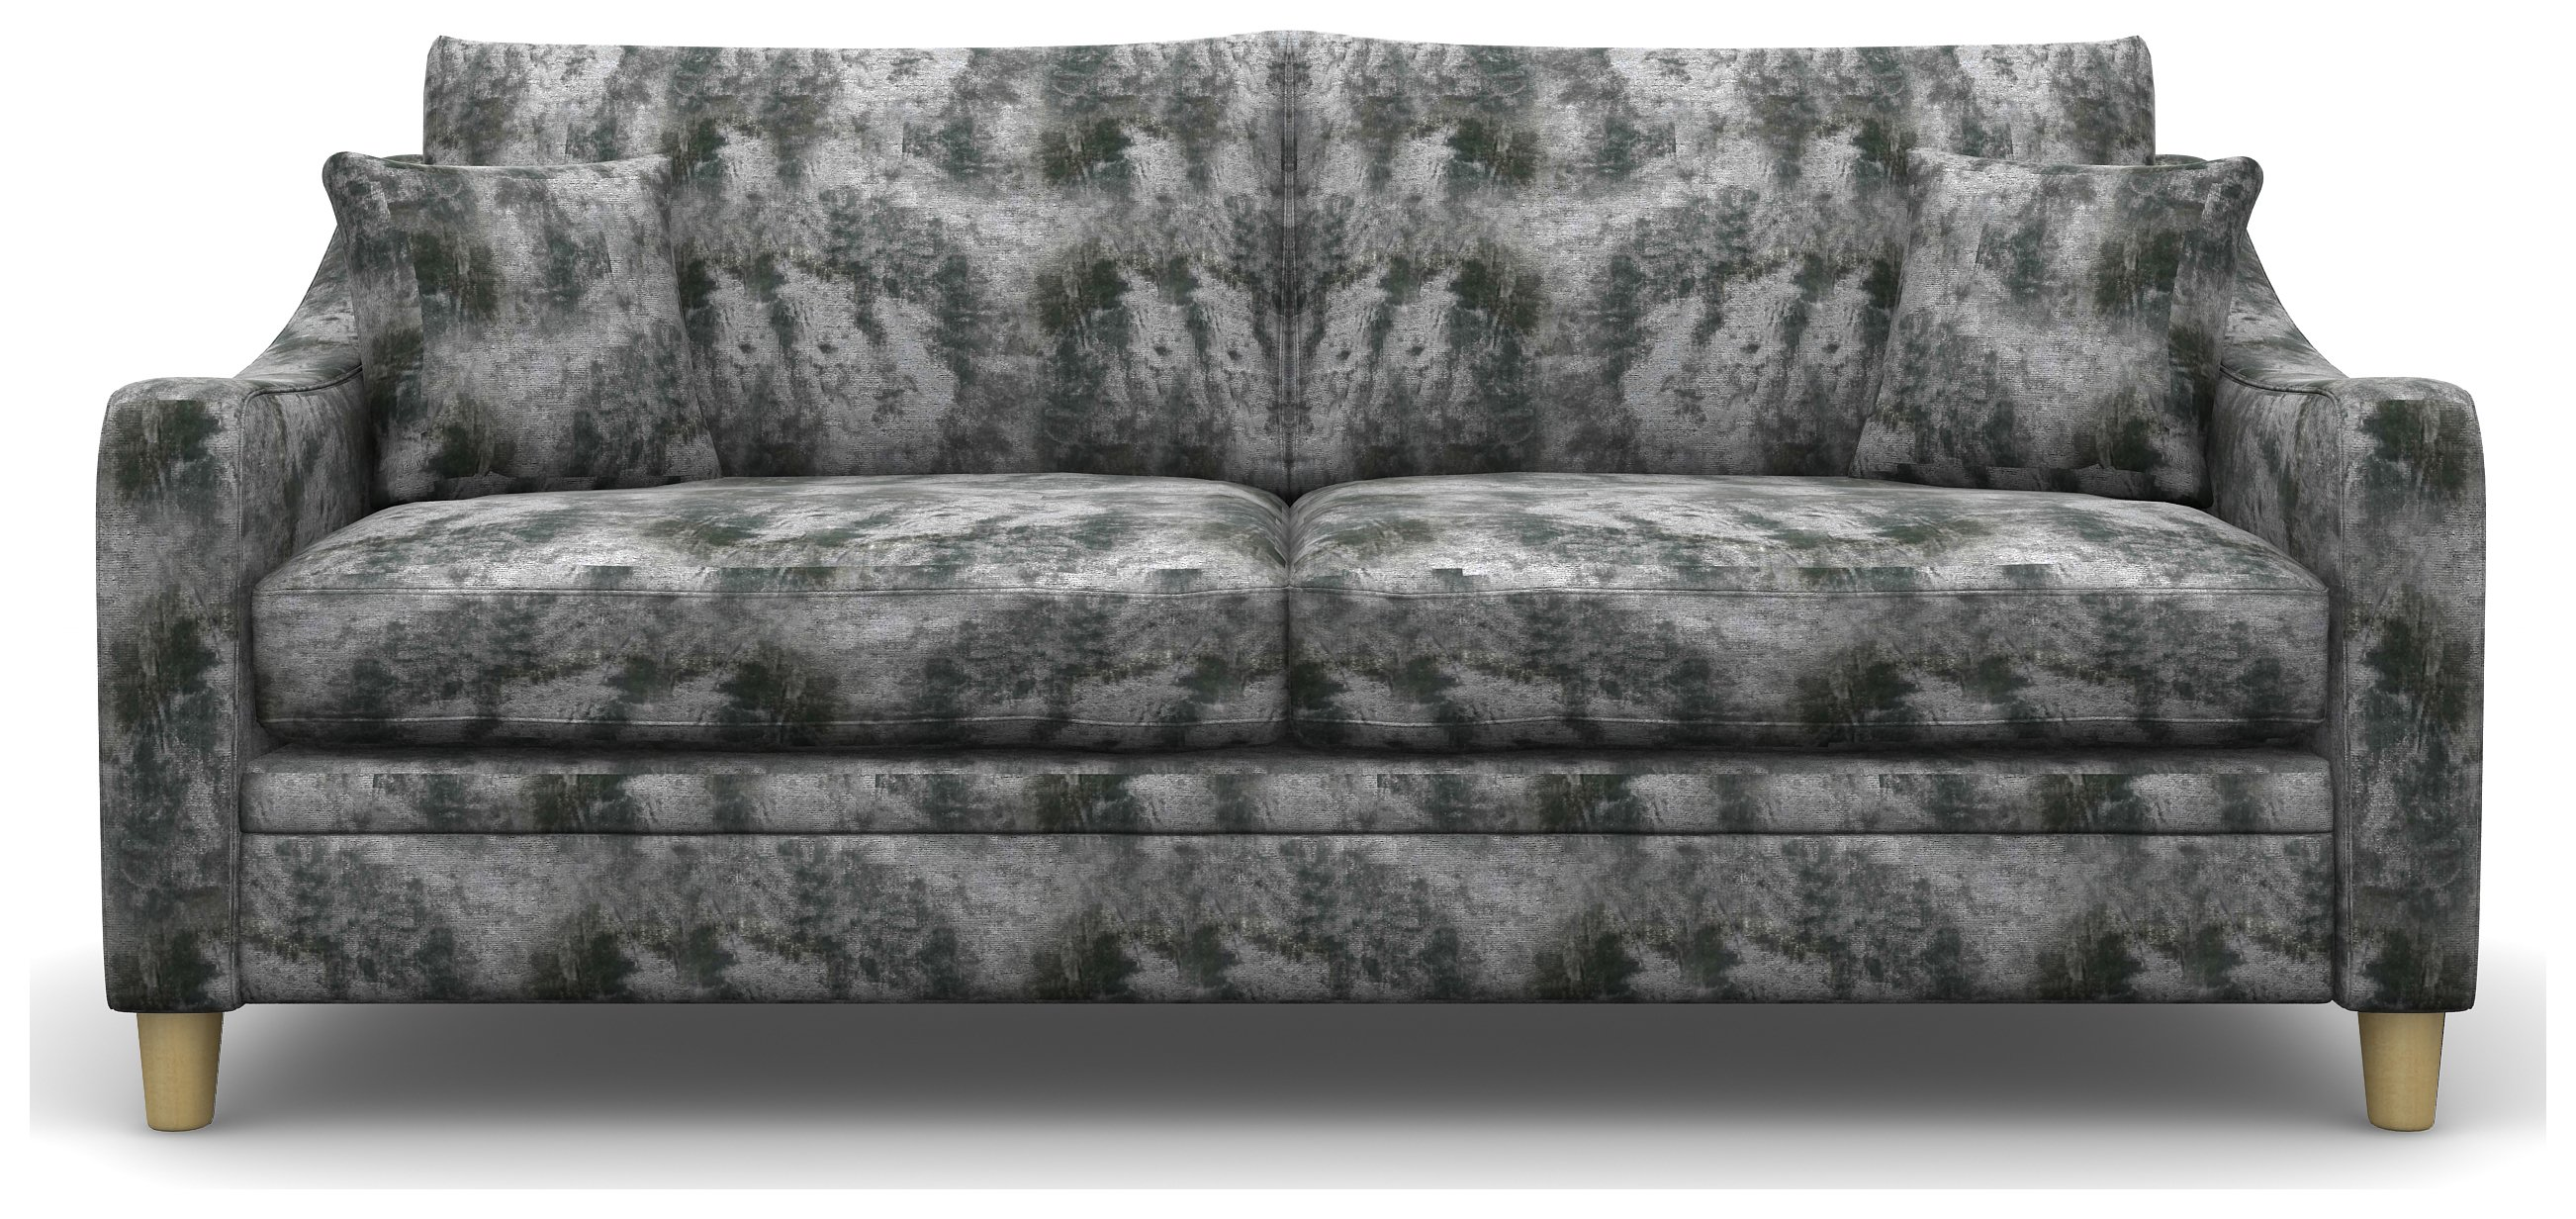 Heart of House Newbury 3 Seater Shimmer Fabric Sofa -Silver.